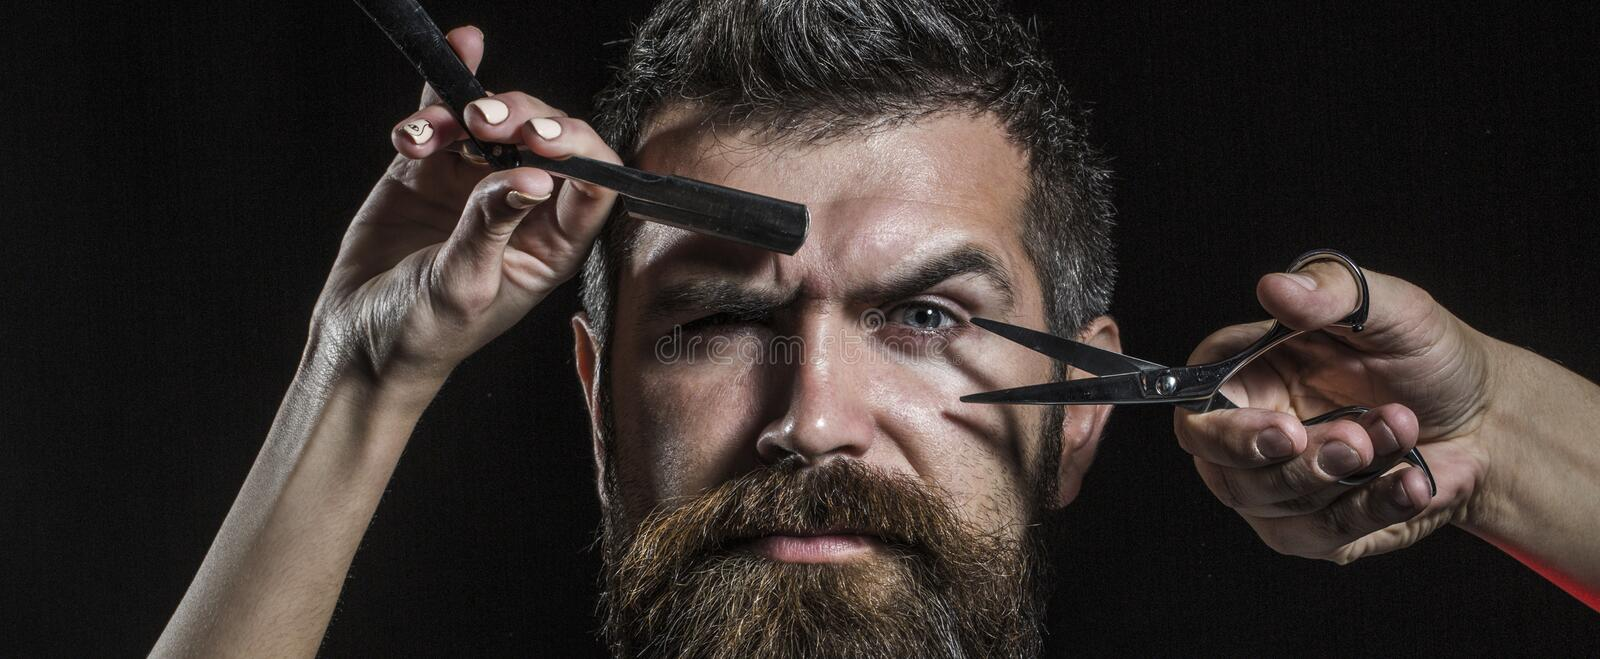 Barber scissors and straight razor, barbershop. Mens haircut, shaving. Bearded man, long beard, brutal, caucasian royalty free stock image